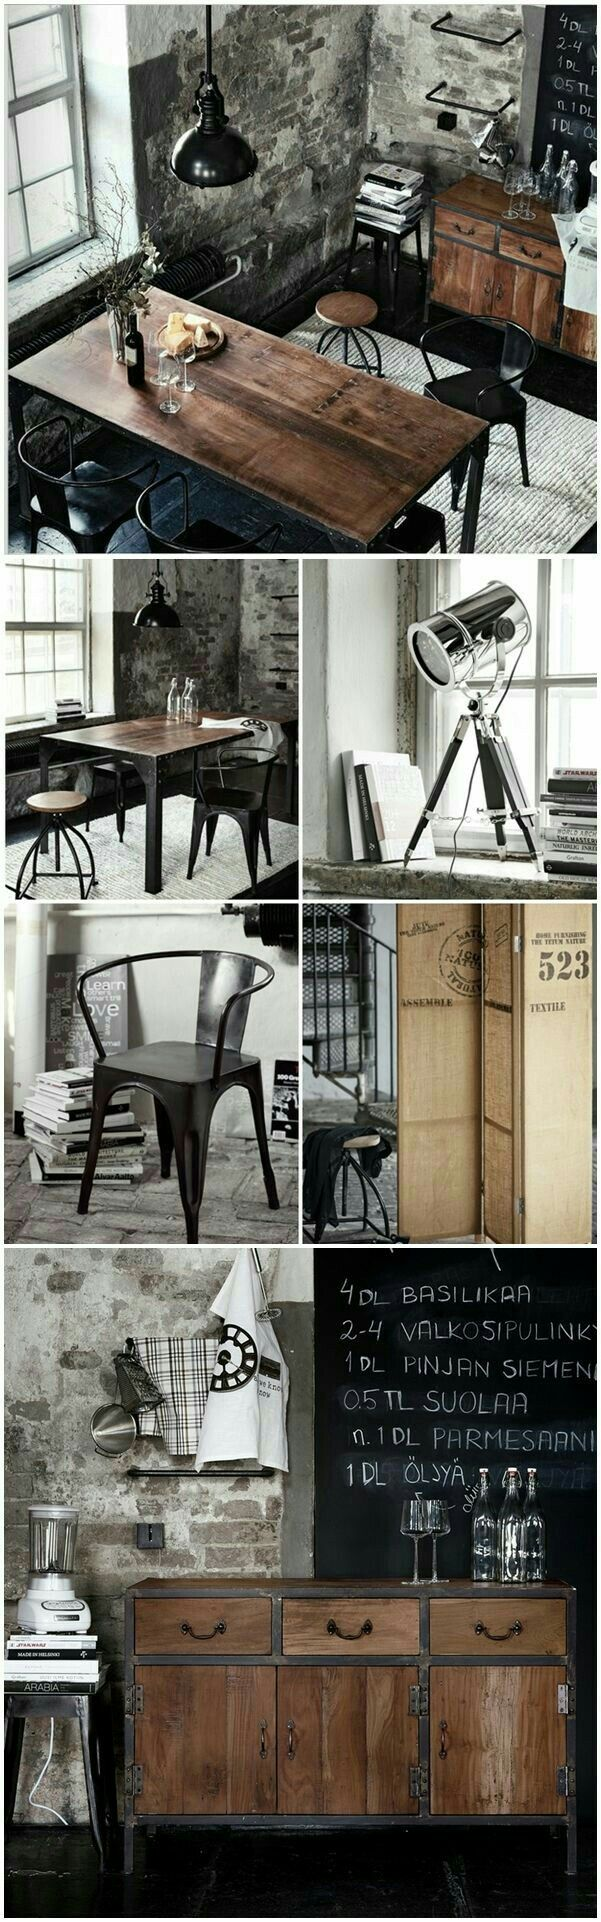 best industiral rustic homeus images on pinterest mezzanine